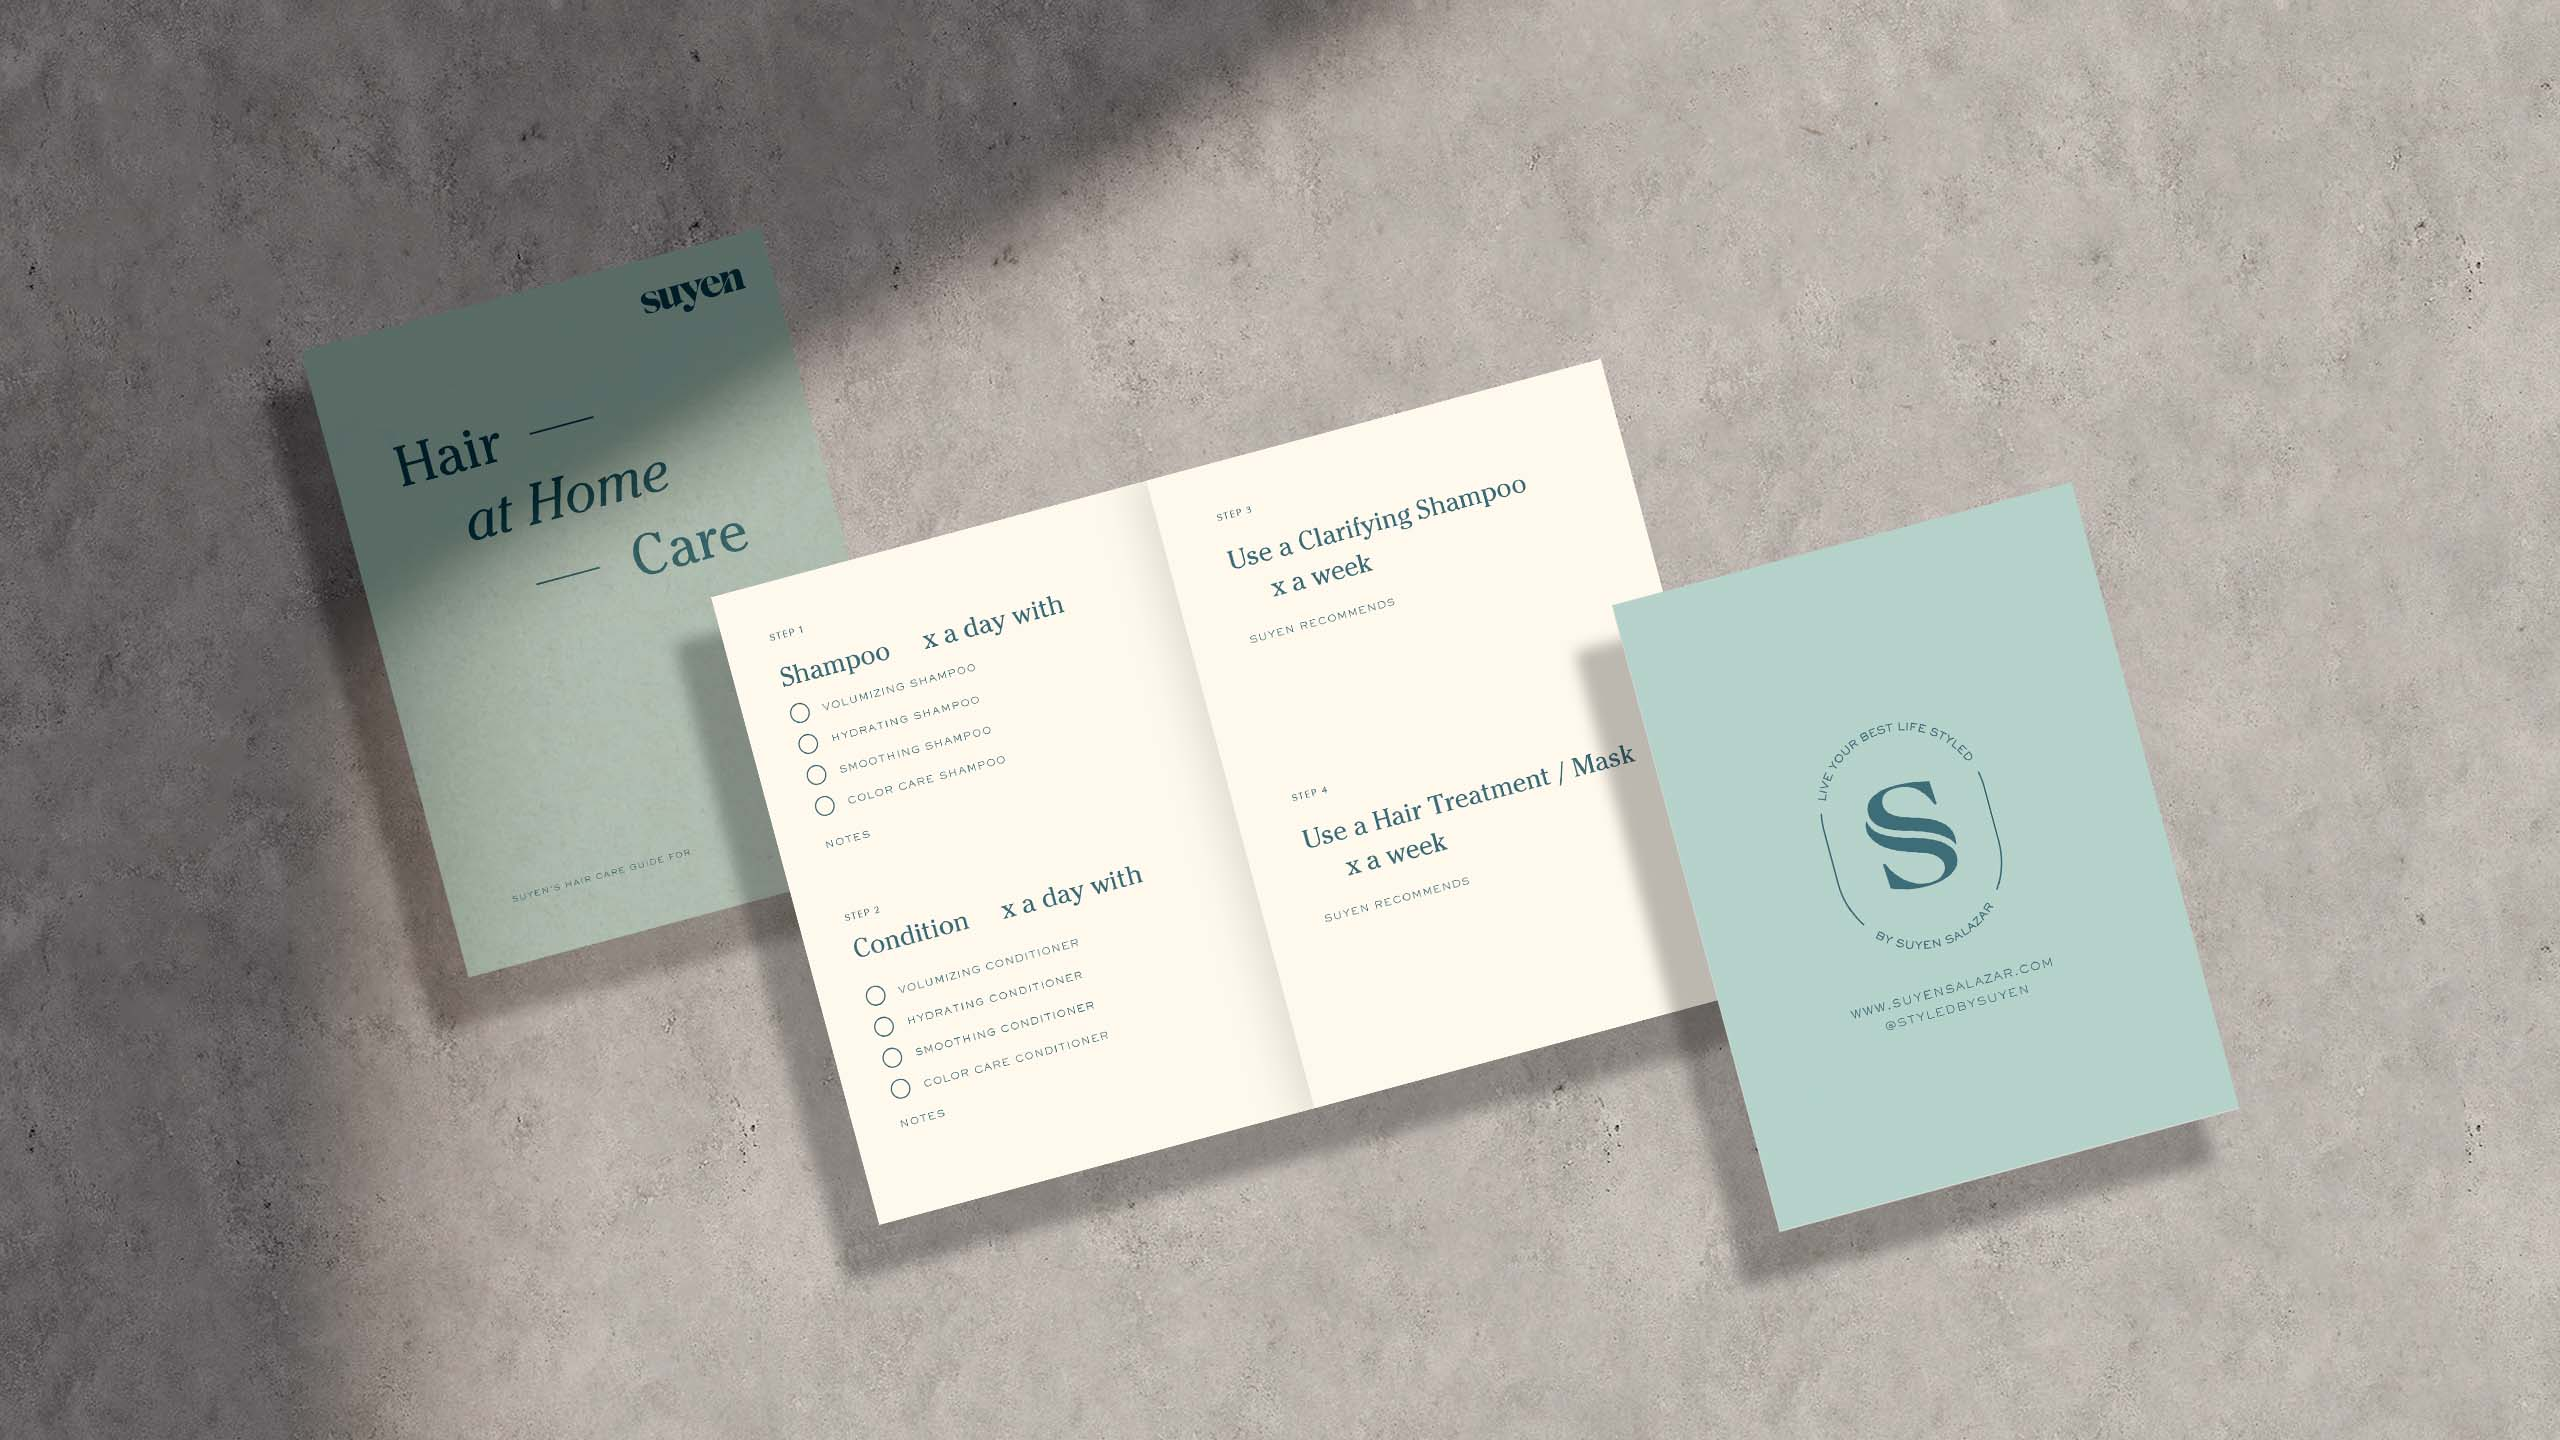 Branding applied on prescription sheets for hairstylist and brand Styled by Suyen